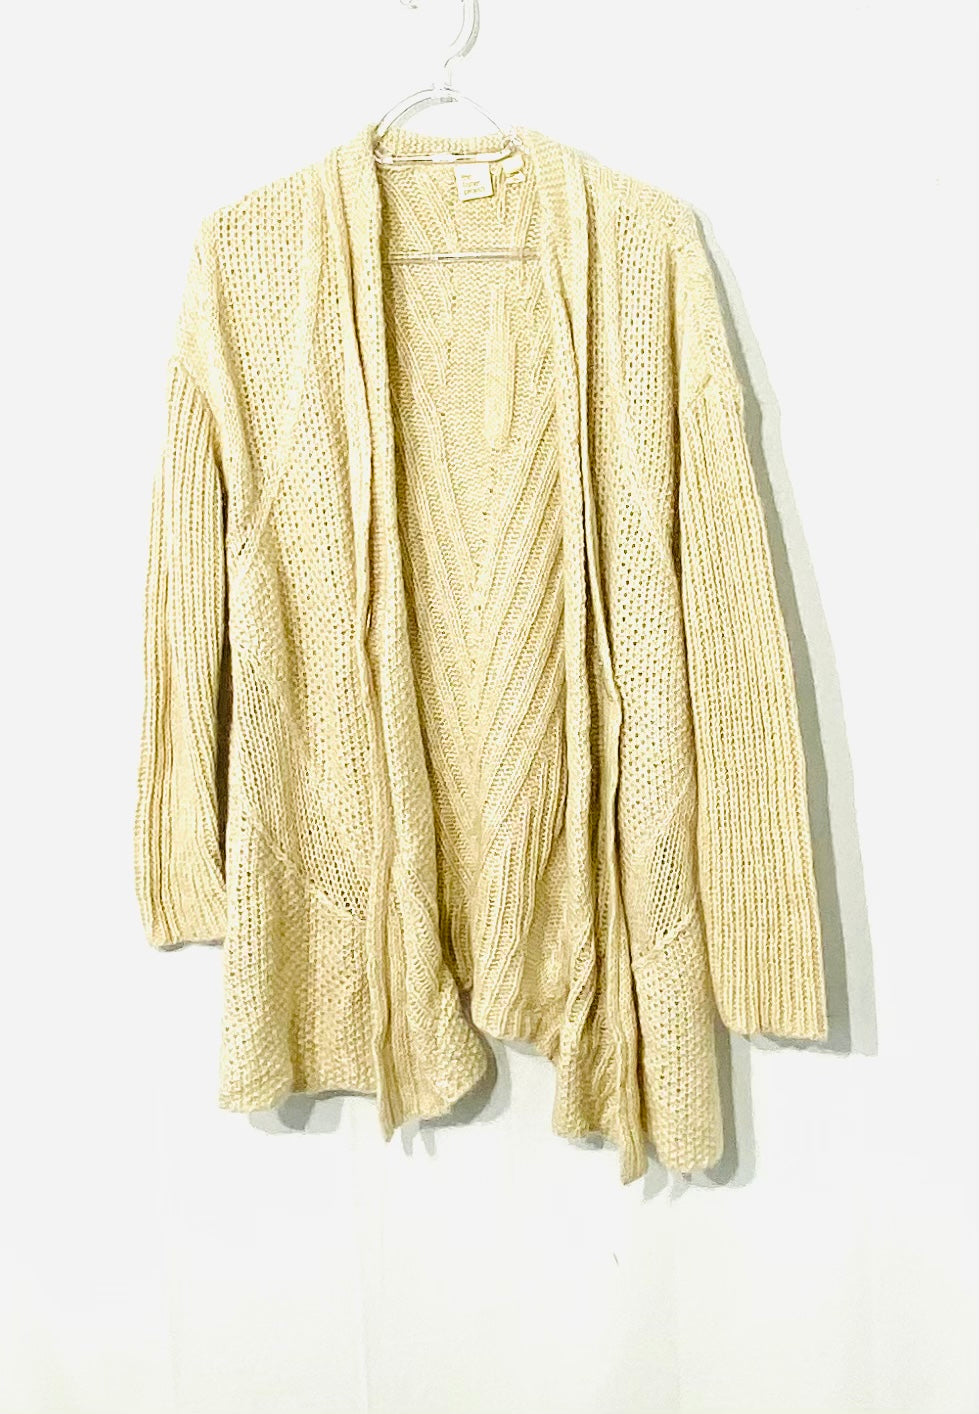 Primary Photo - BRAND: EILEEN FISHER THE FISHER PROJECT <BR>STYLE: SWEATER LIGHTWEIGHT <BR>COLOR: BEIGE <BR>SIZE: M <BR>SKU: 262-26275-71452<BR>35% LINEN<BR>18% MOHAIR<BR>DESIGNER FINAL